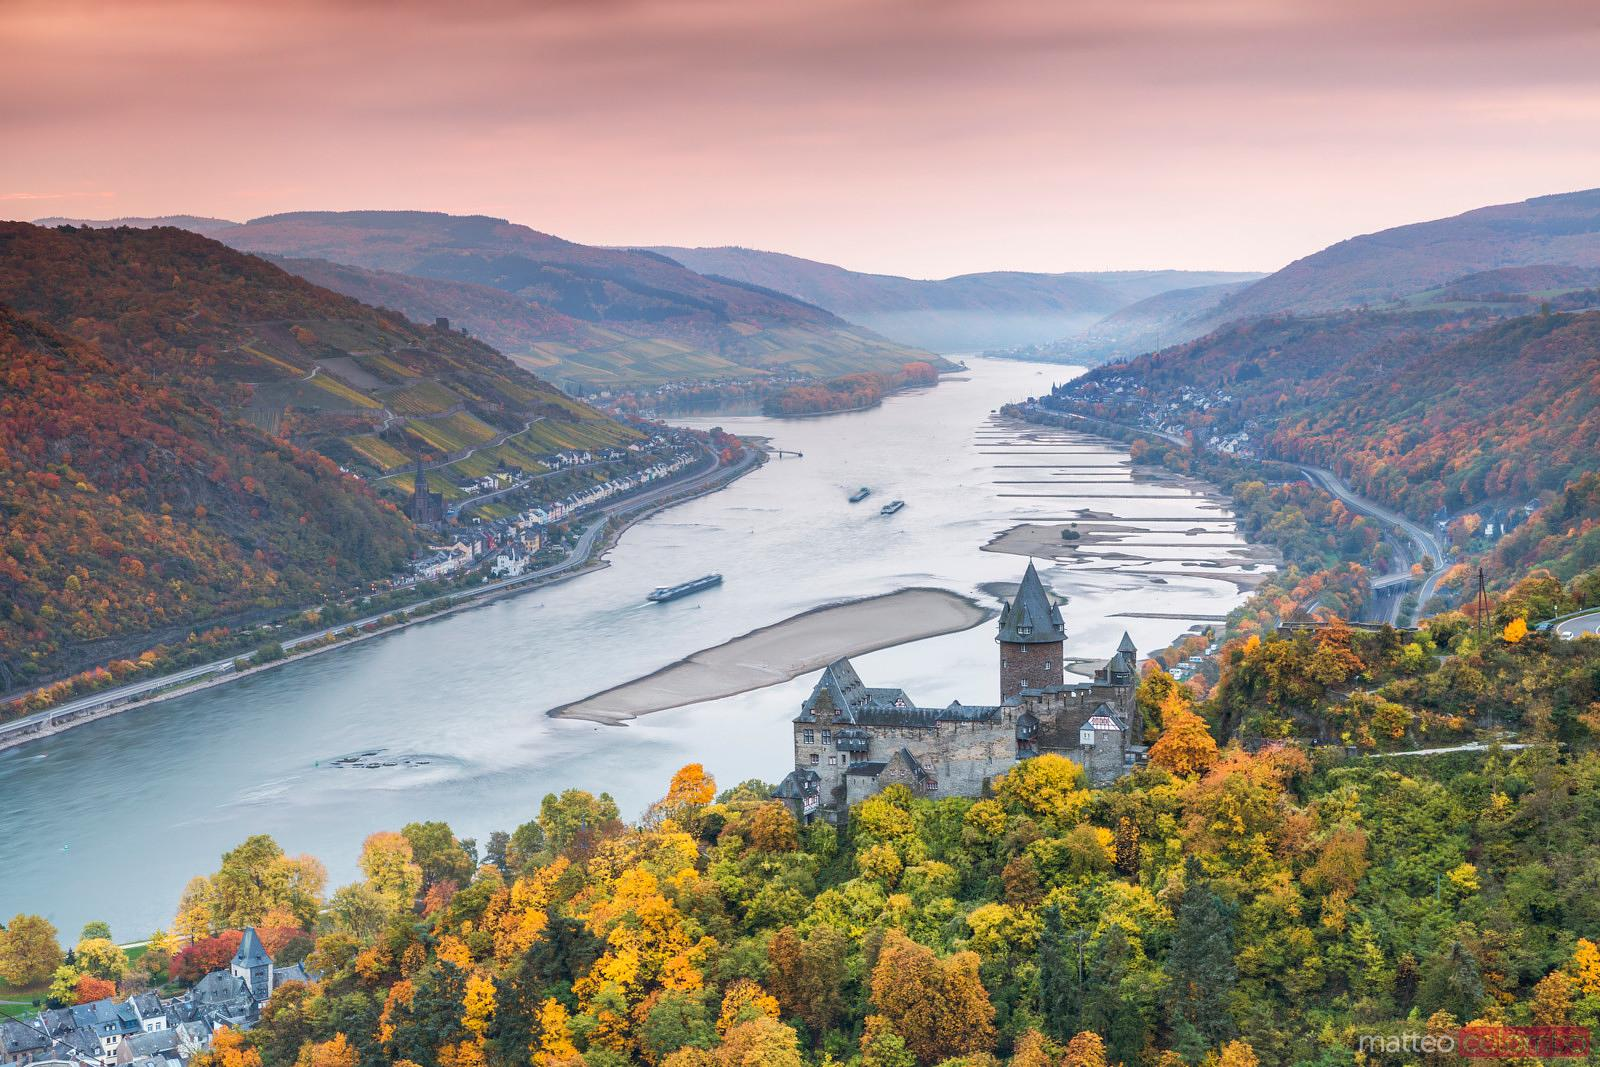 Burg Stahleck and river Rhine in autumn at sunrise, Germany